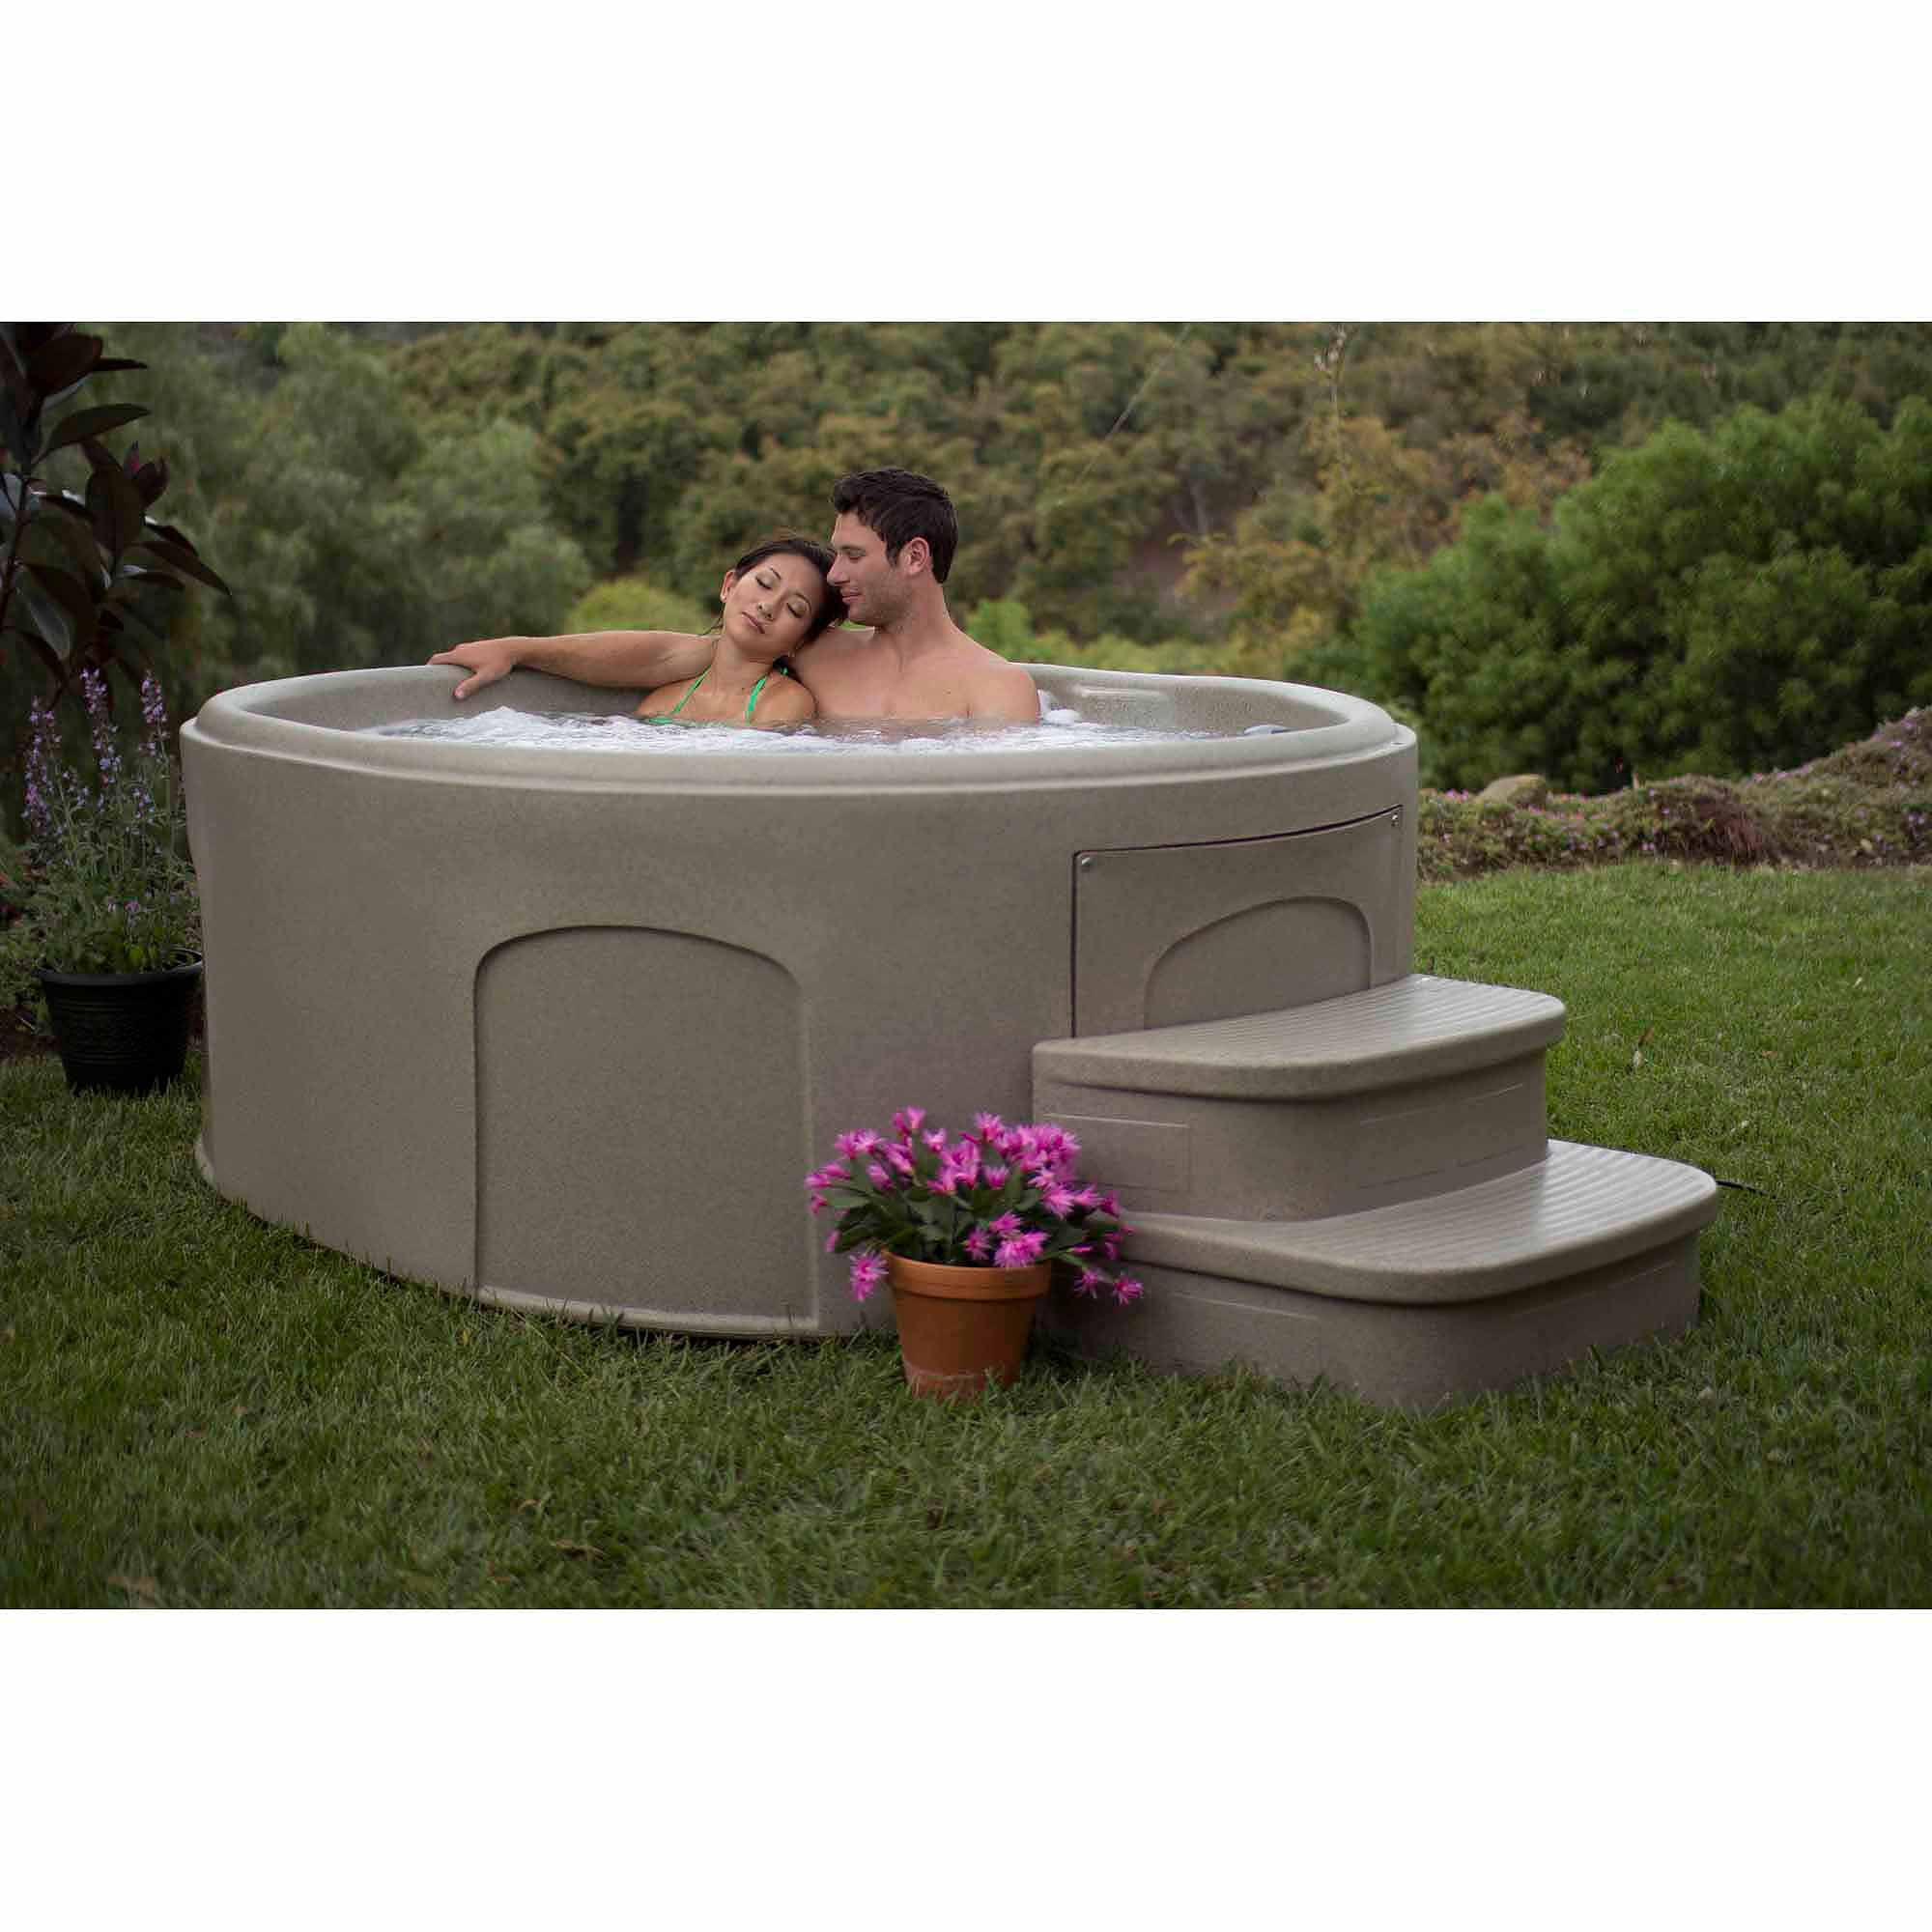 LifeSmart Lifelux DLX 4-Person Plug n Play Spa with Upgrade Package and Matching Step